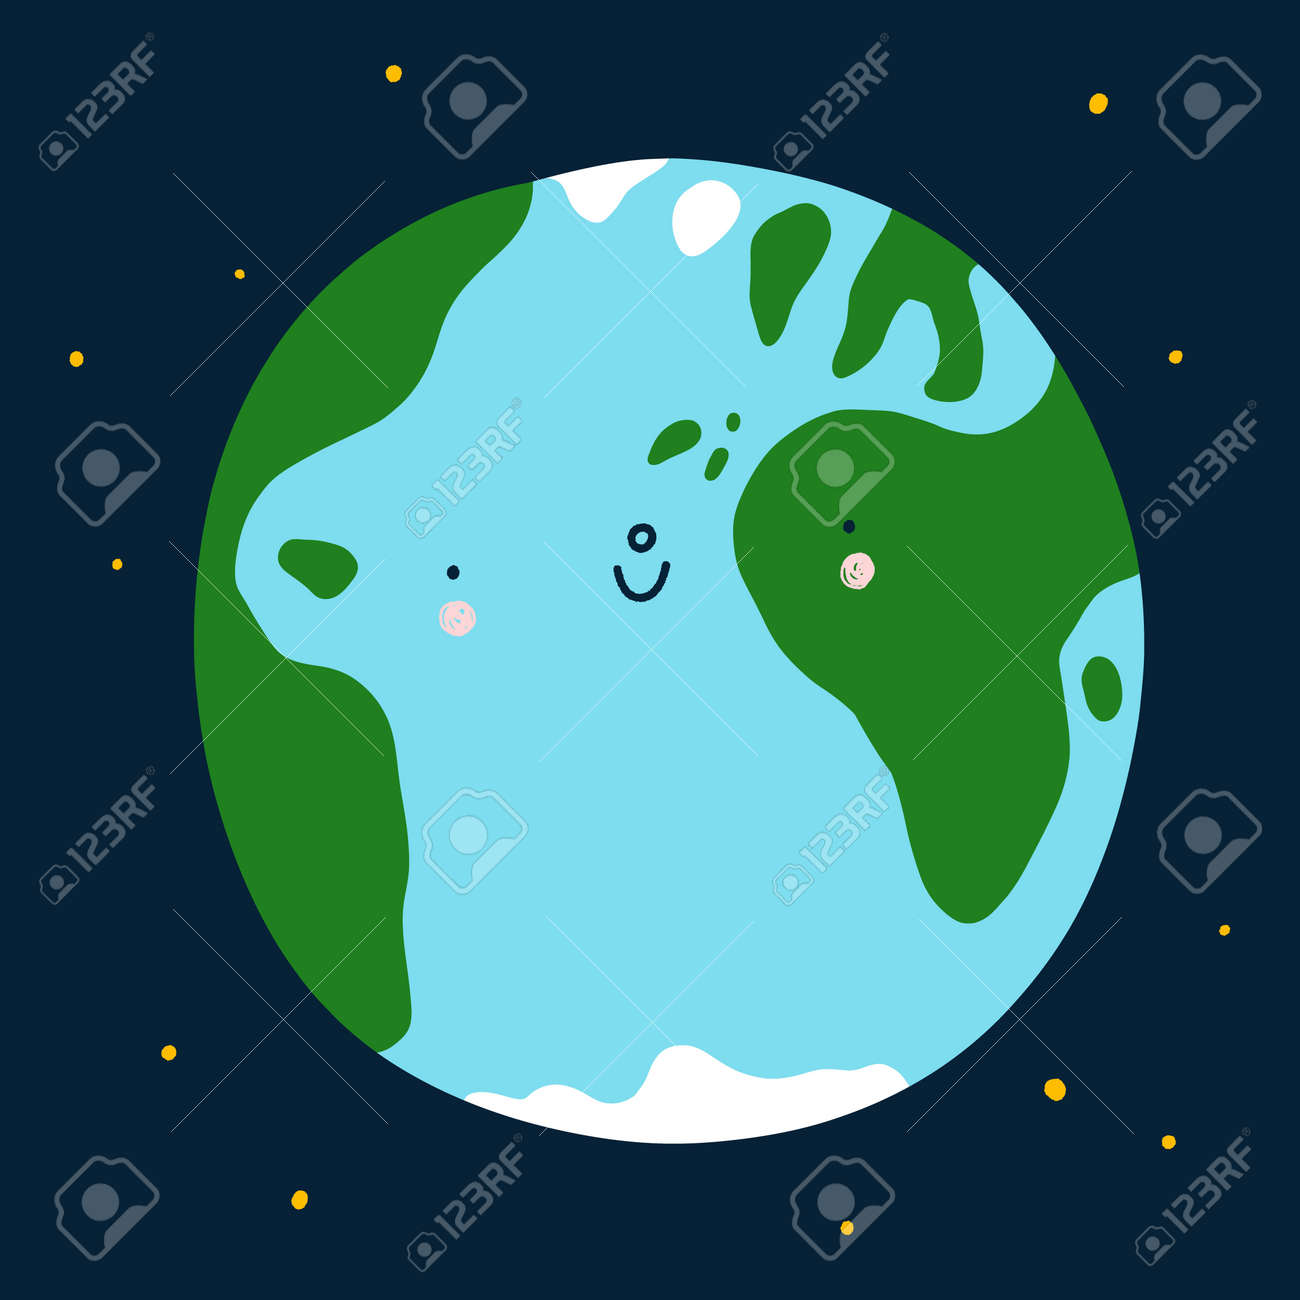 Planet Earth cute and happy cartoon vector character, space illustration, save the Earth - 164192541